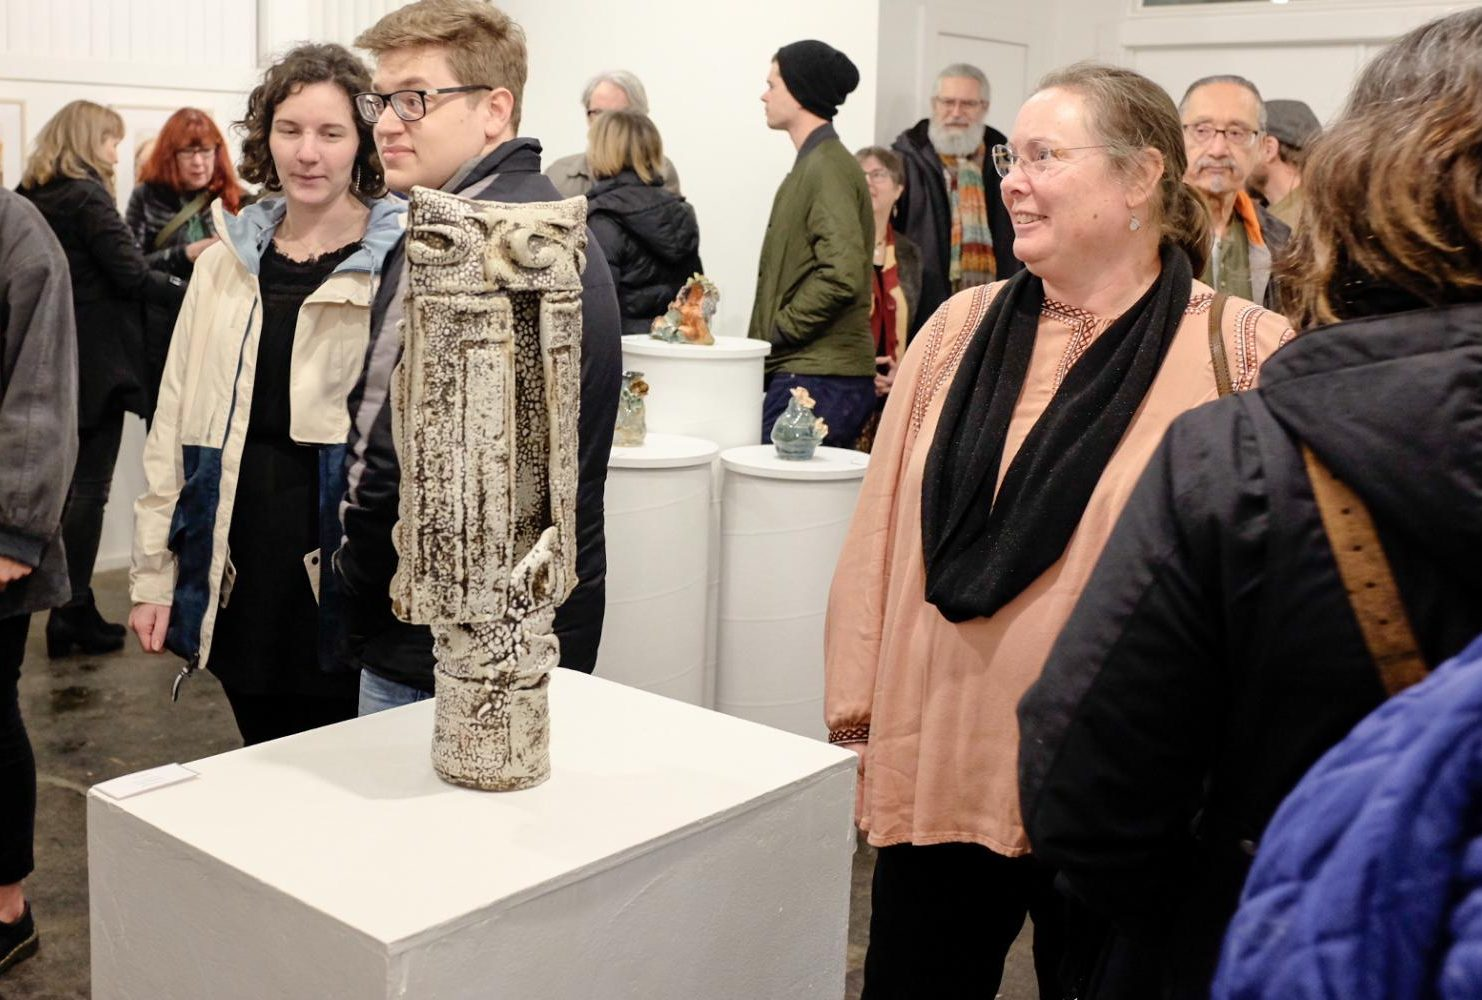 Photography professor Jodie Hooker admires the works of art made by her colegues during the opening reception for the ARC Faculty/Staff Art Show at the E Street Gallery on Feb. 10, 2019. (Photo by Patrick Hyun Wilson)